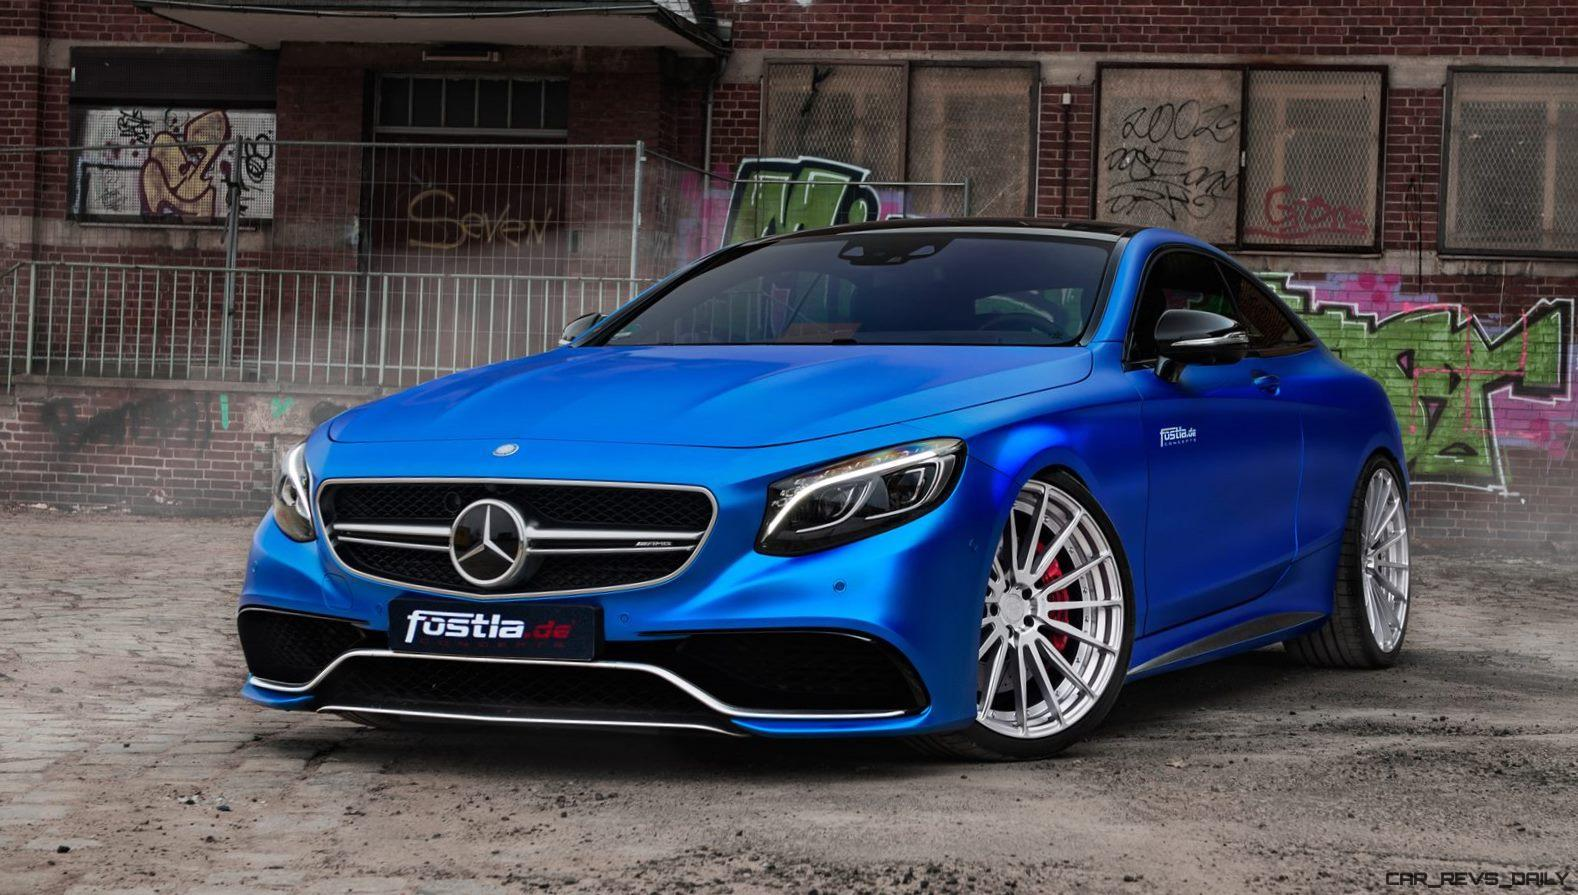 Mercedes S63 Amg Coupe >> 2017 Mercedes-AMG S63 Coupe By FOSTLA.de Is Dripping Blue ...